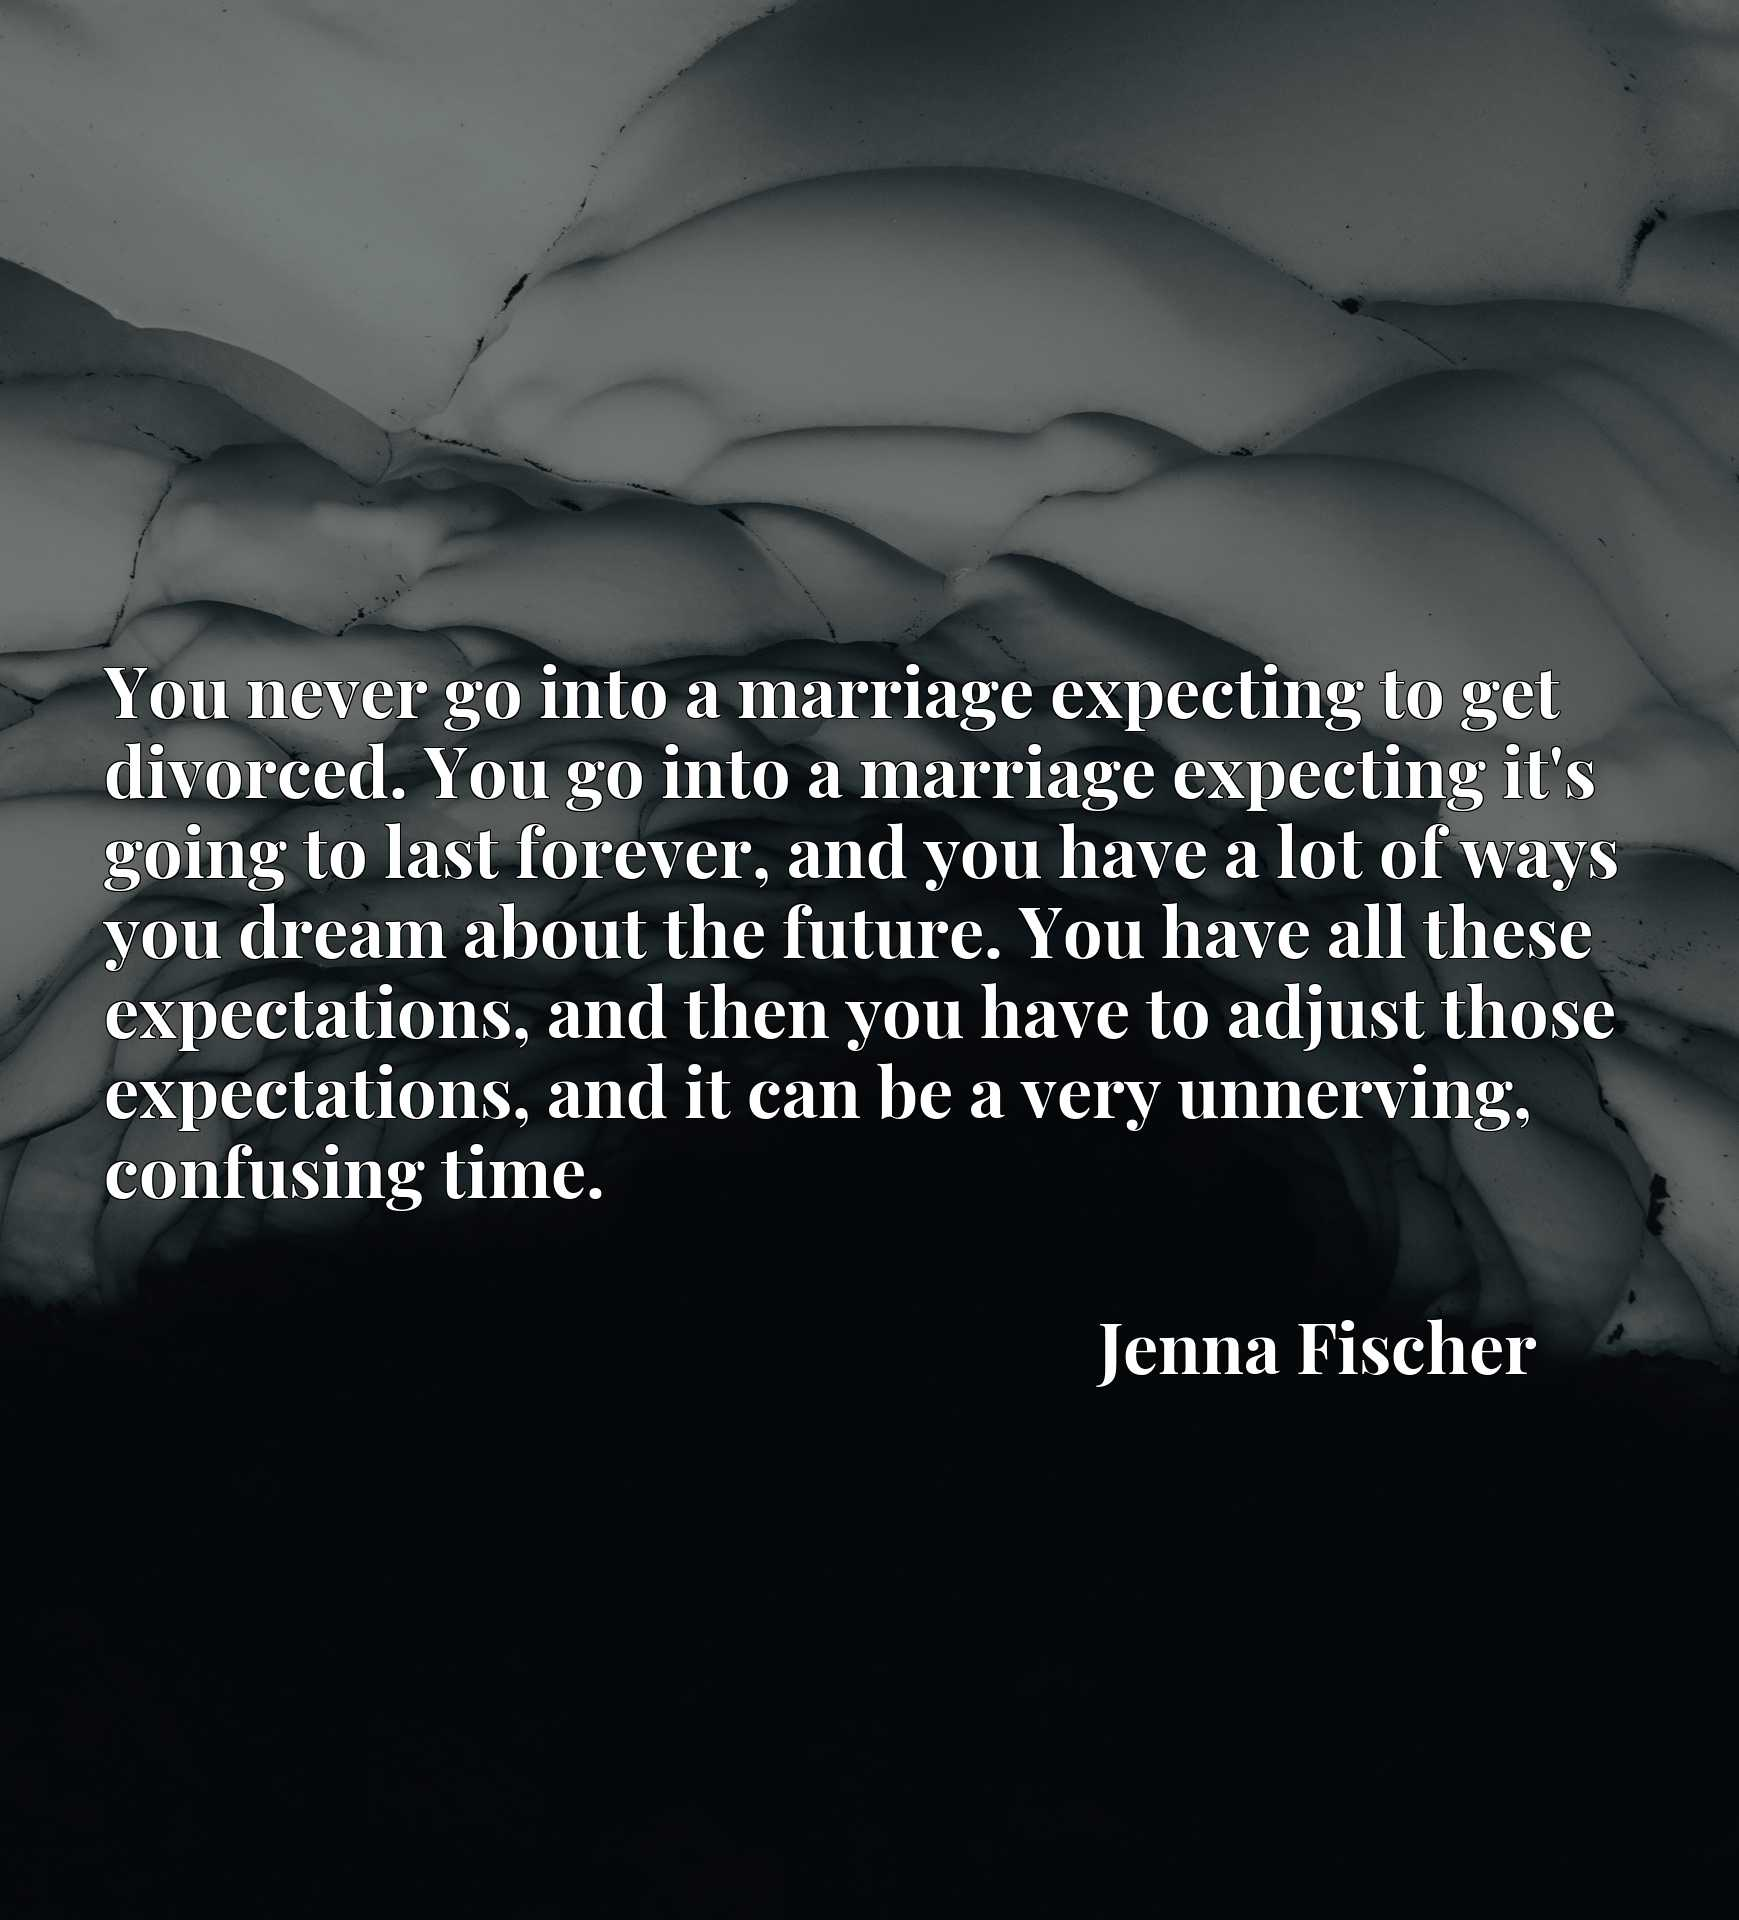 You never go into a marriage expecting to get divorced. You go into a marriage expecting it's going to last forever, and you have a lot of ways you dream about the future. You have all these expectations, and then you have to adjust those expectations, and it can be a very unnerving, confusing time.